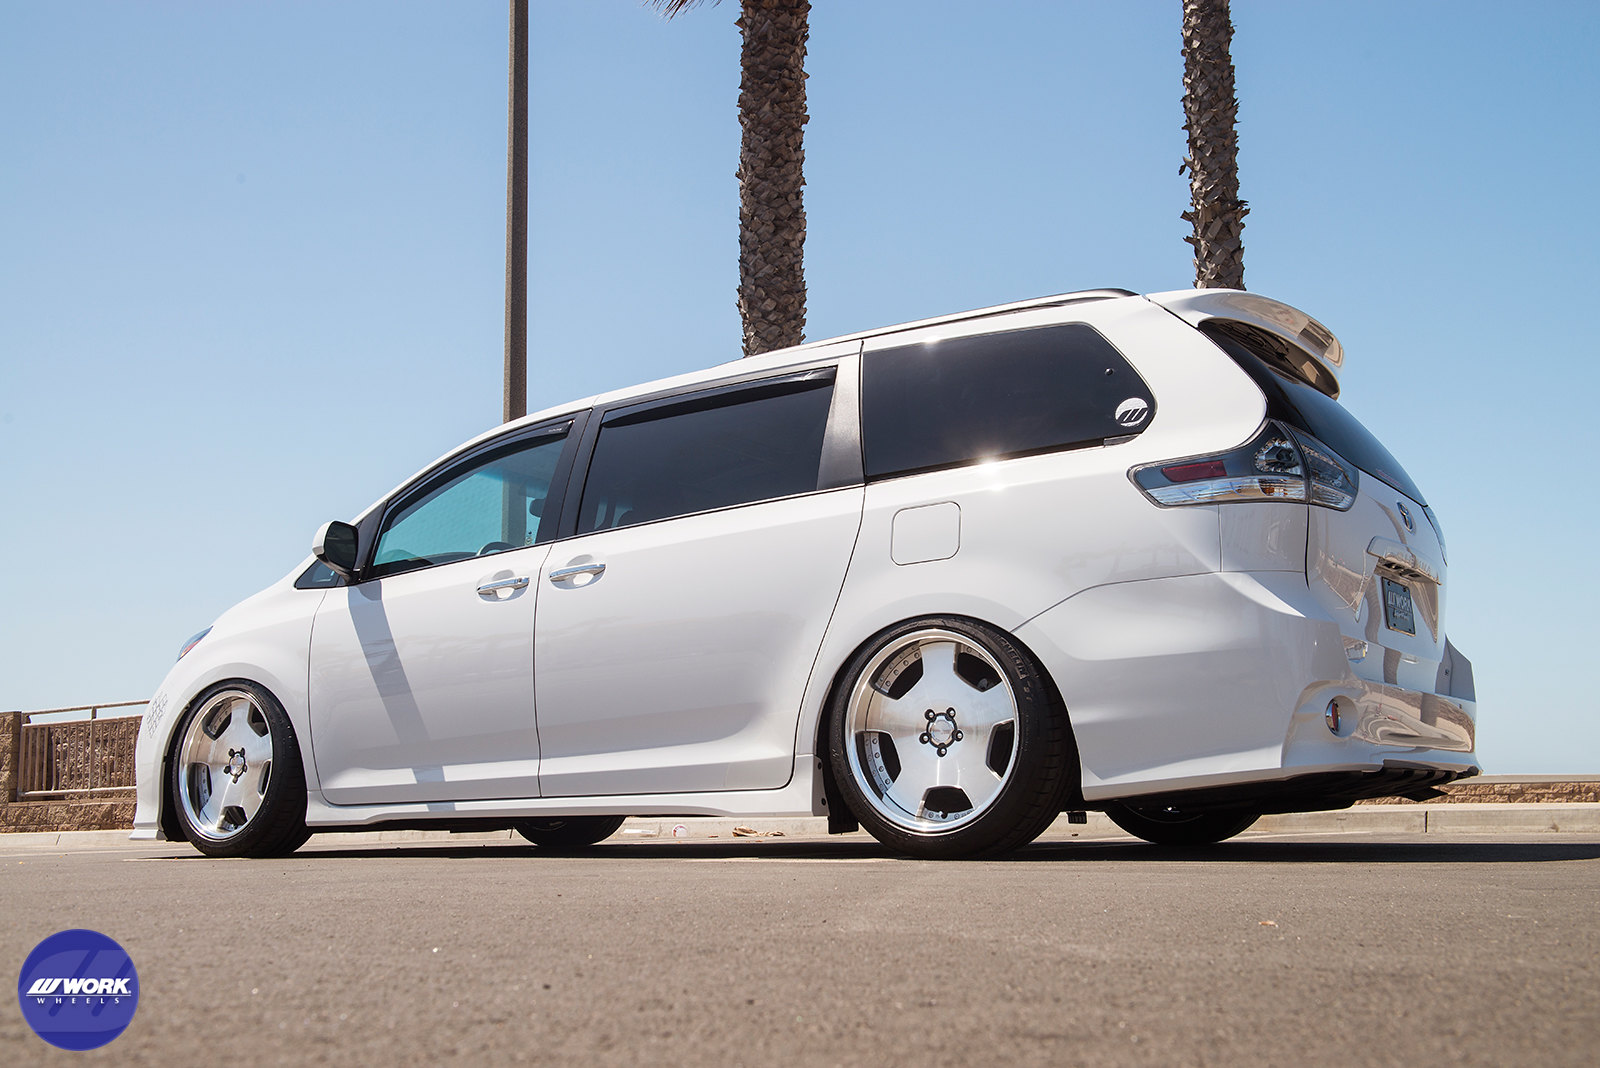 toyota sienna se on work lanvec ld1 photoshoot work wheels usa. Black Bedroom Furniture Sets. Home Design Ideas